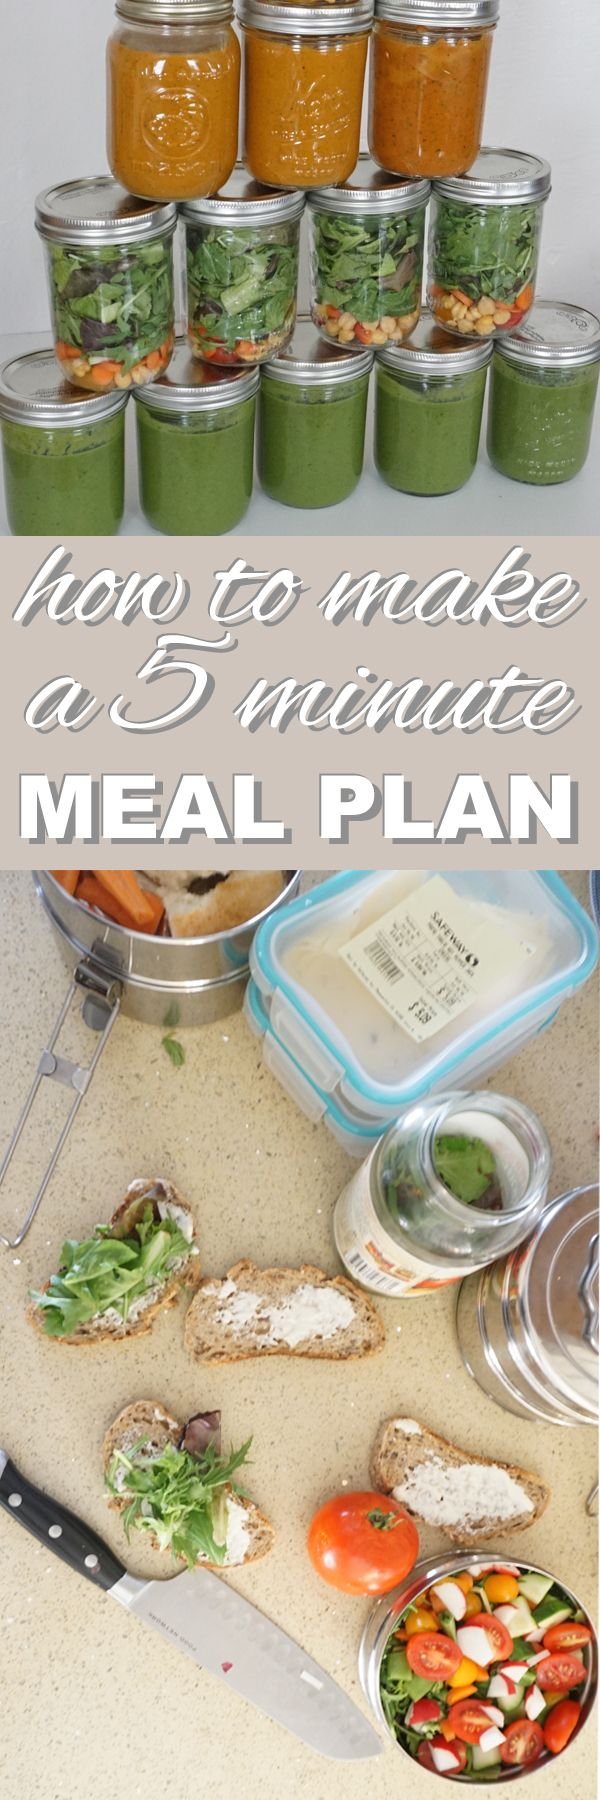 Meal planning is the key to eating healthy and preventing food waste. Find out how to make a 5 minute meal plan. It's quick, easy, and eco-friendly. Find out more on the zero waste blog www.goingzerowaste.com